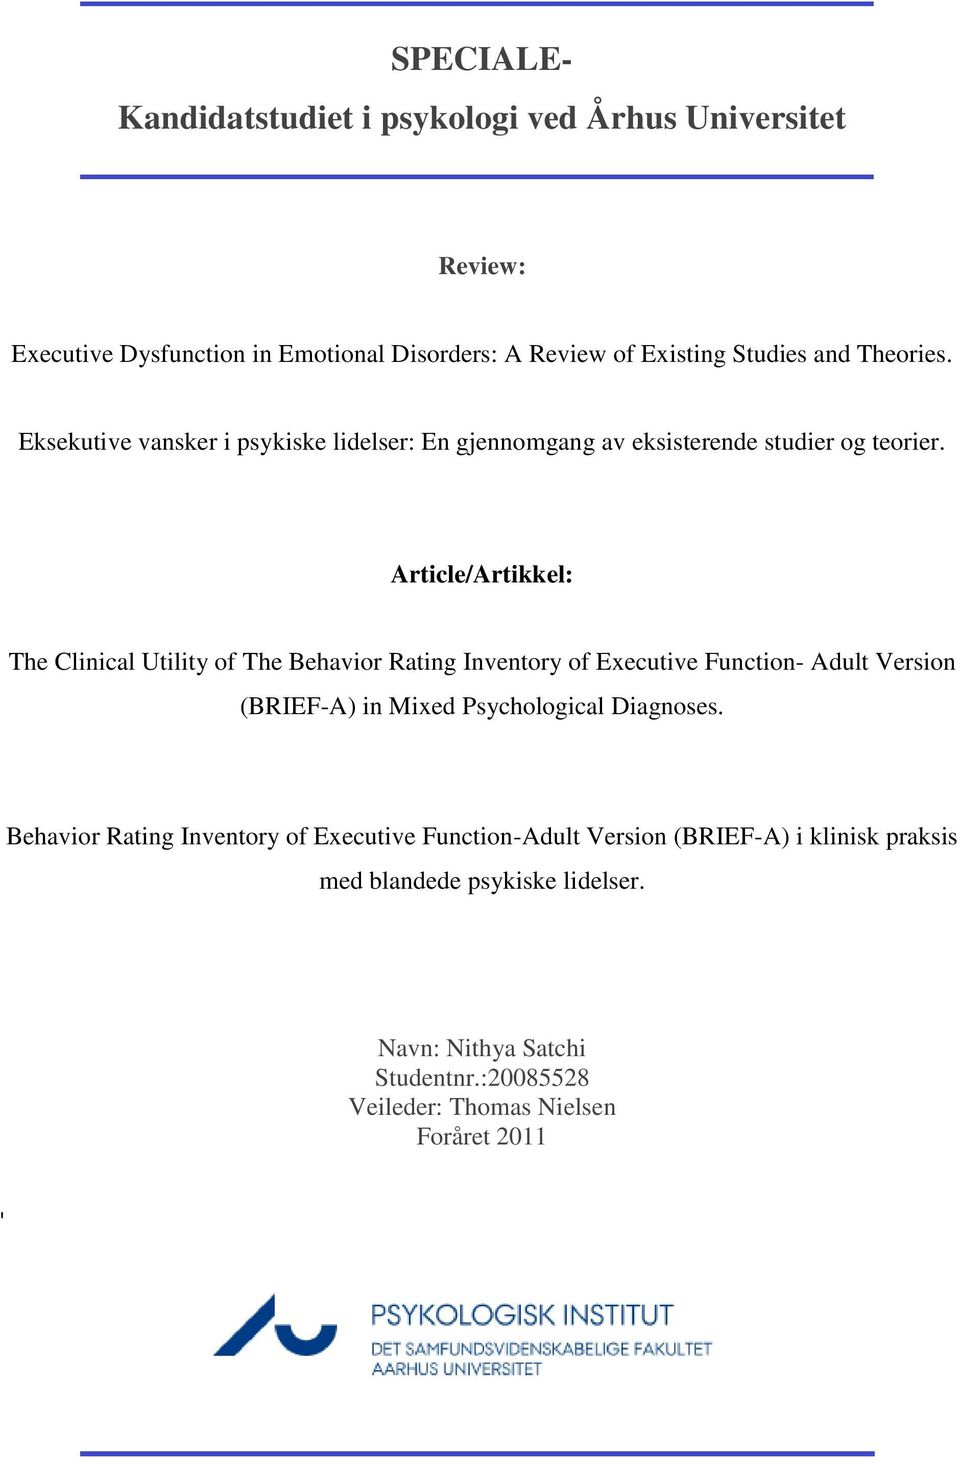 Article/Artikkel: The Clinical Utility of The Behavior Rating Inventory of Executive Function- Adult Version (BRIEF-A) in Mixed Psychological